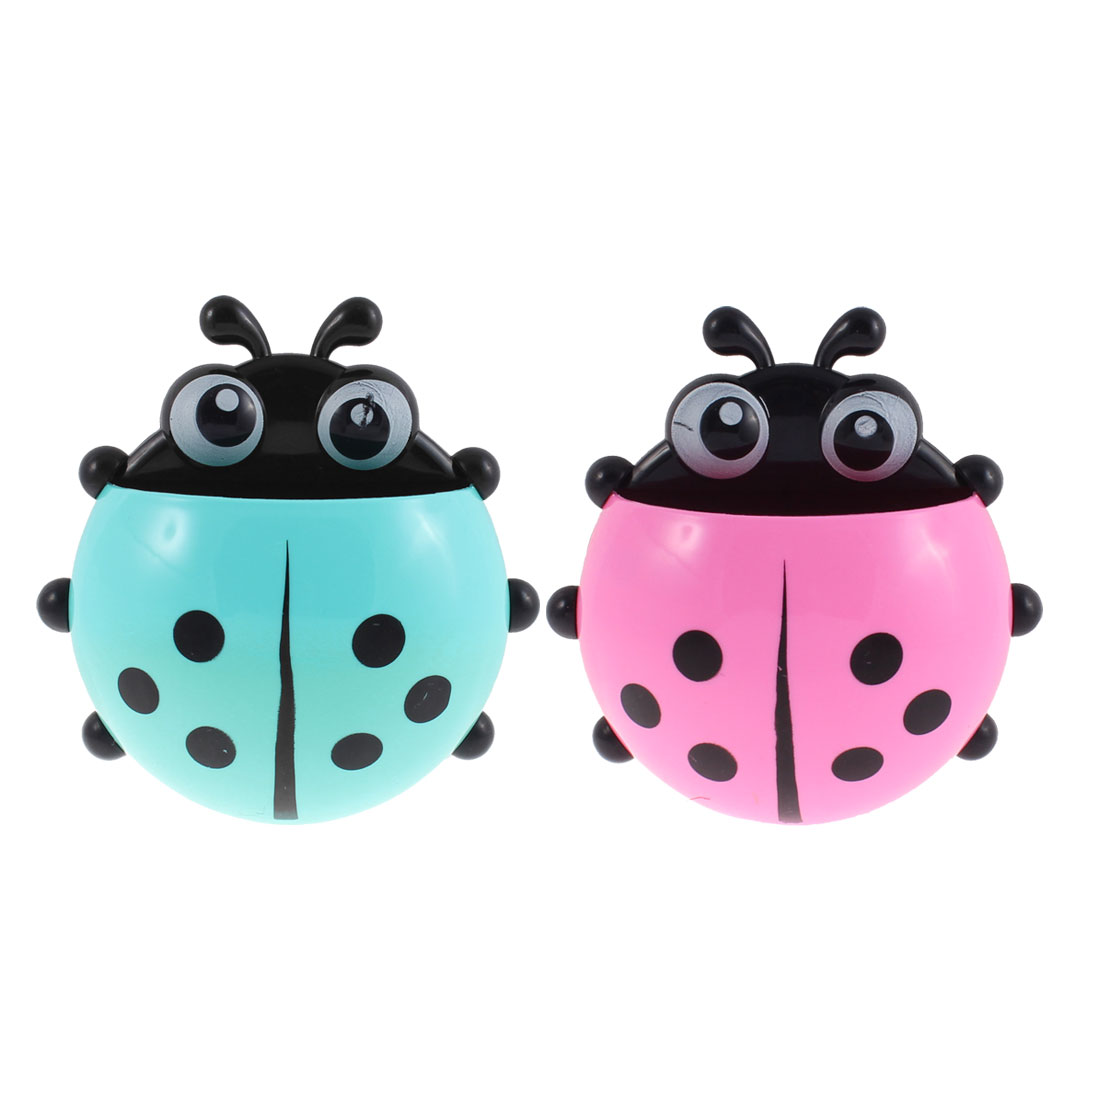 Household Plastic Ladybird Shape Toothbrush Holder Cyan Pink 2 Pcs